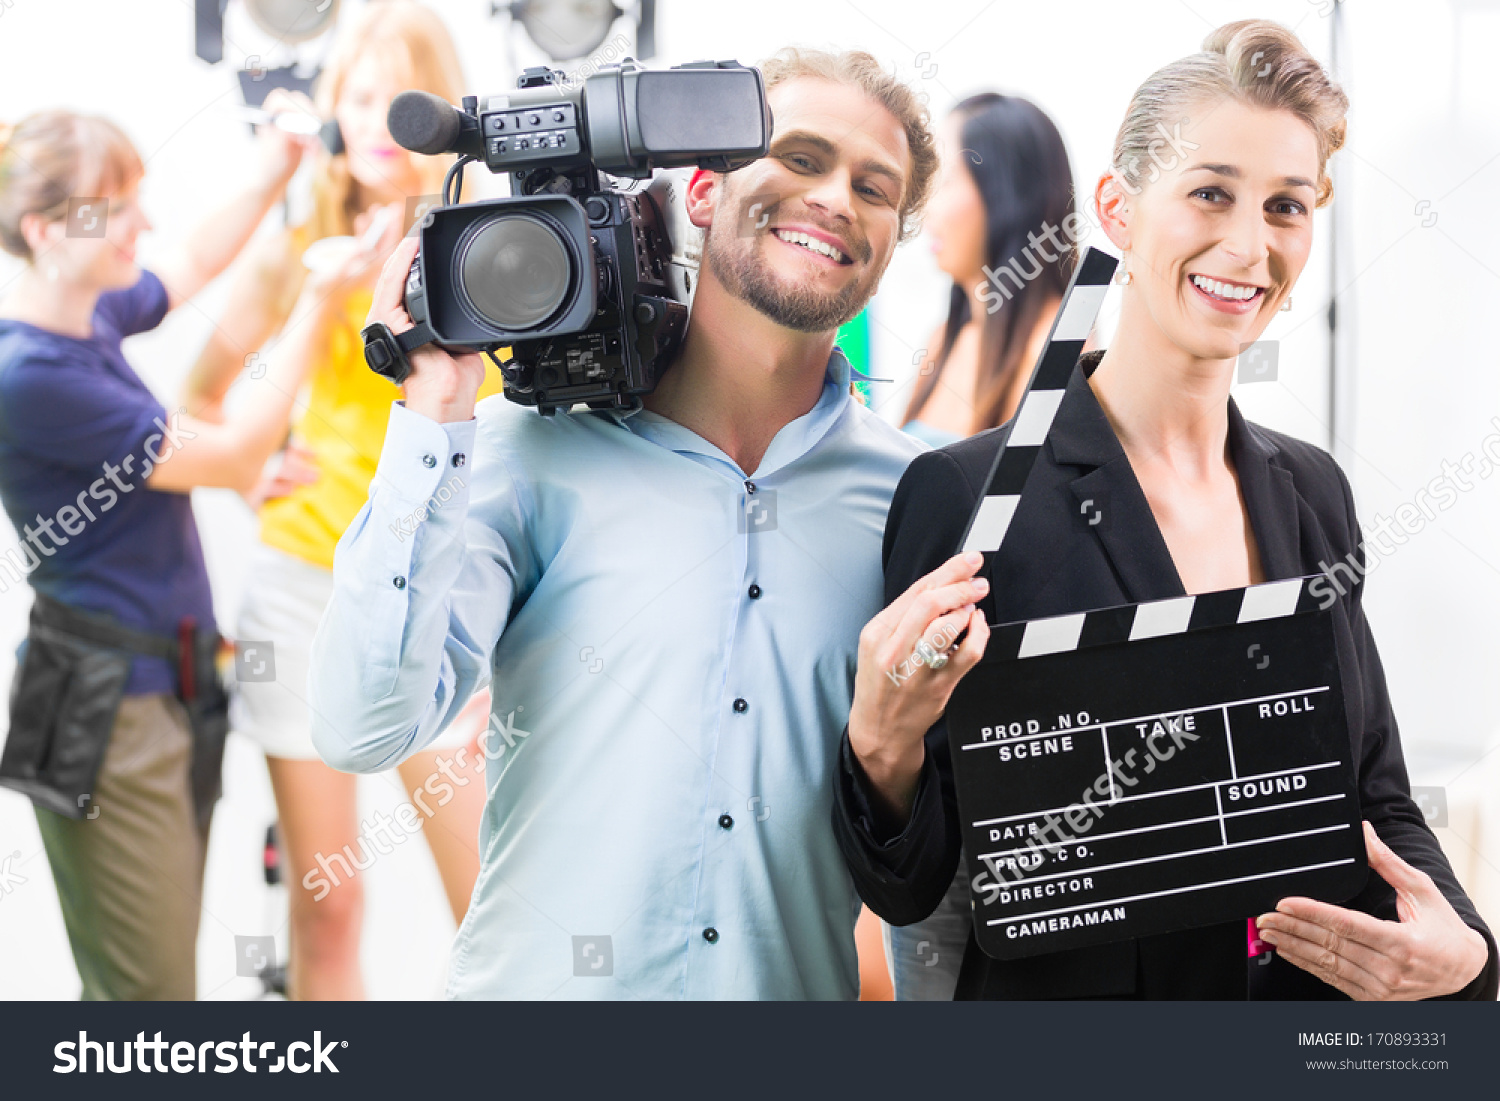 how to become a cameraman